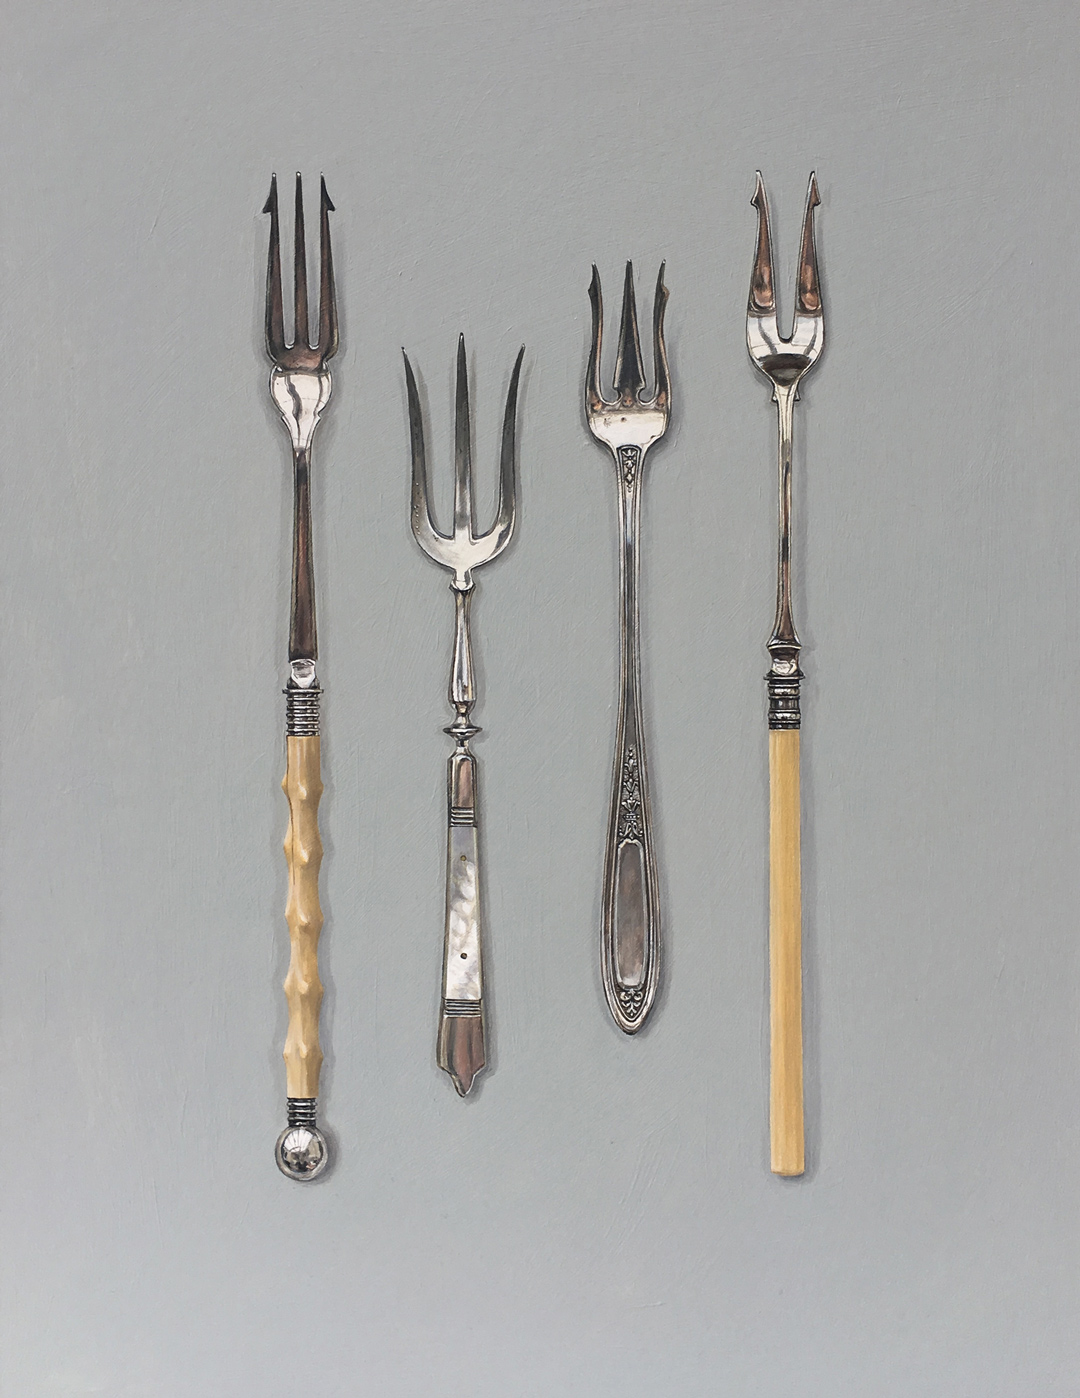 pickle forks